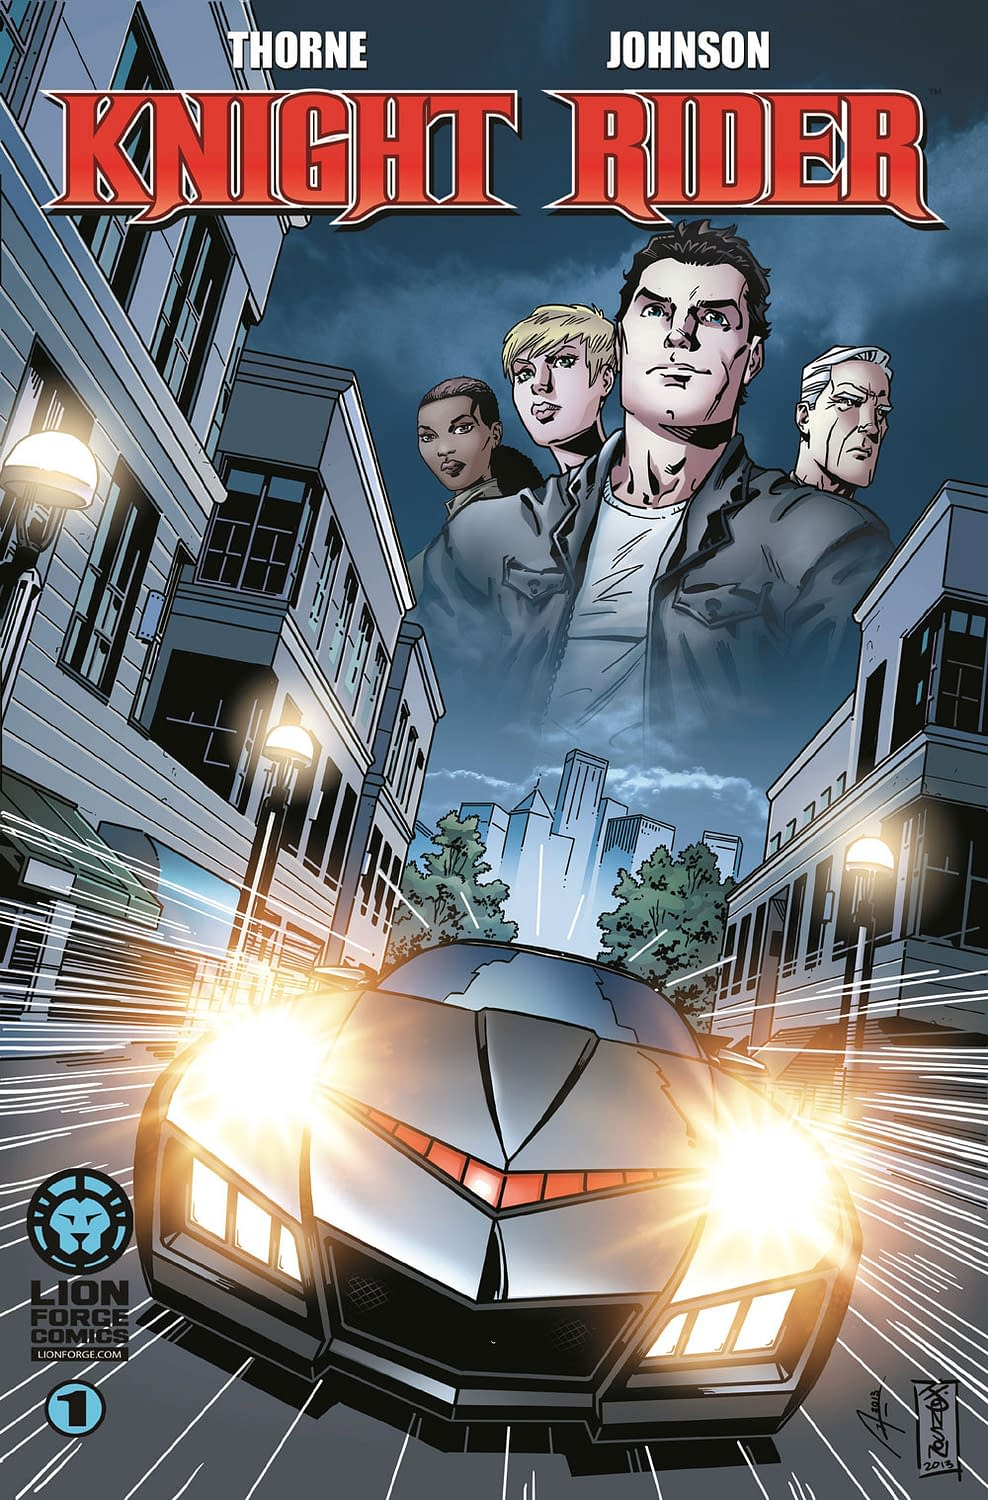 LionForge_KnightRider_Cover